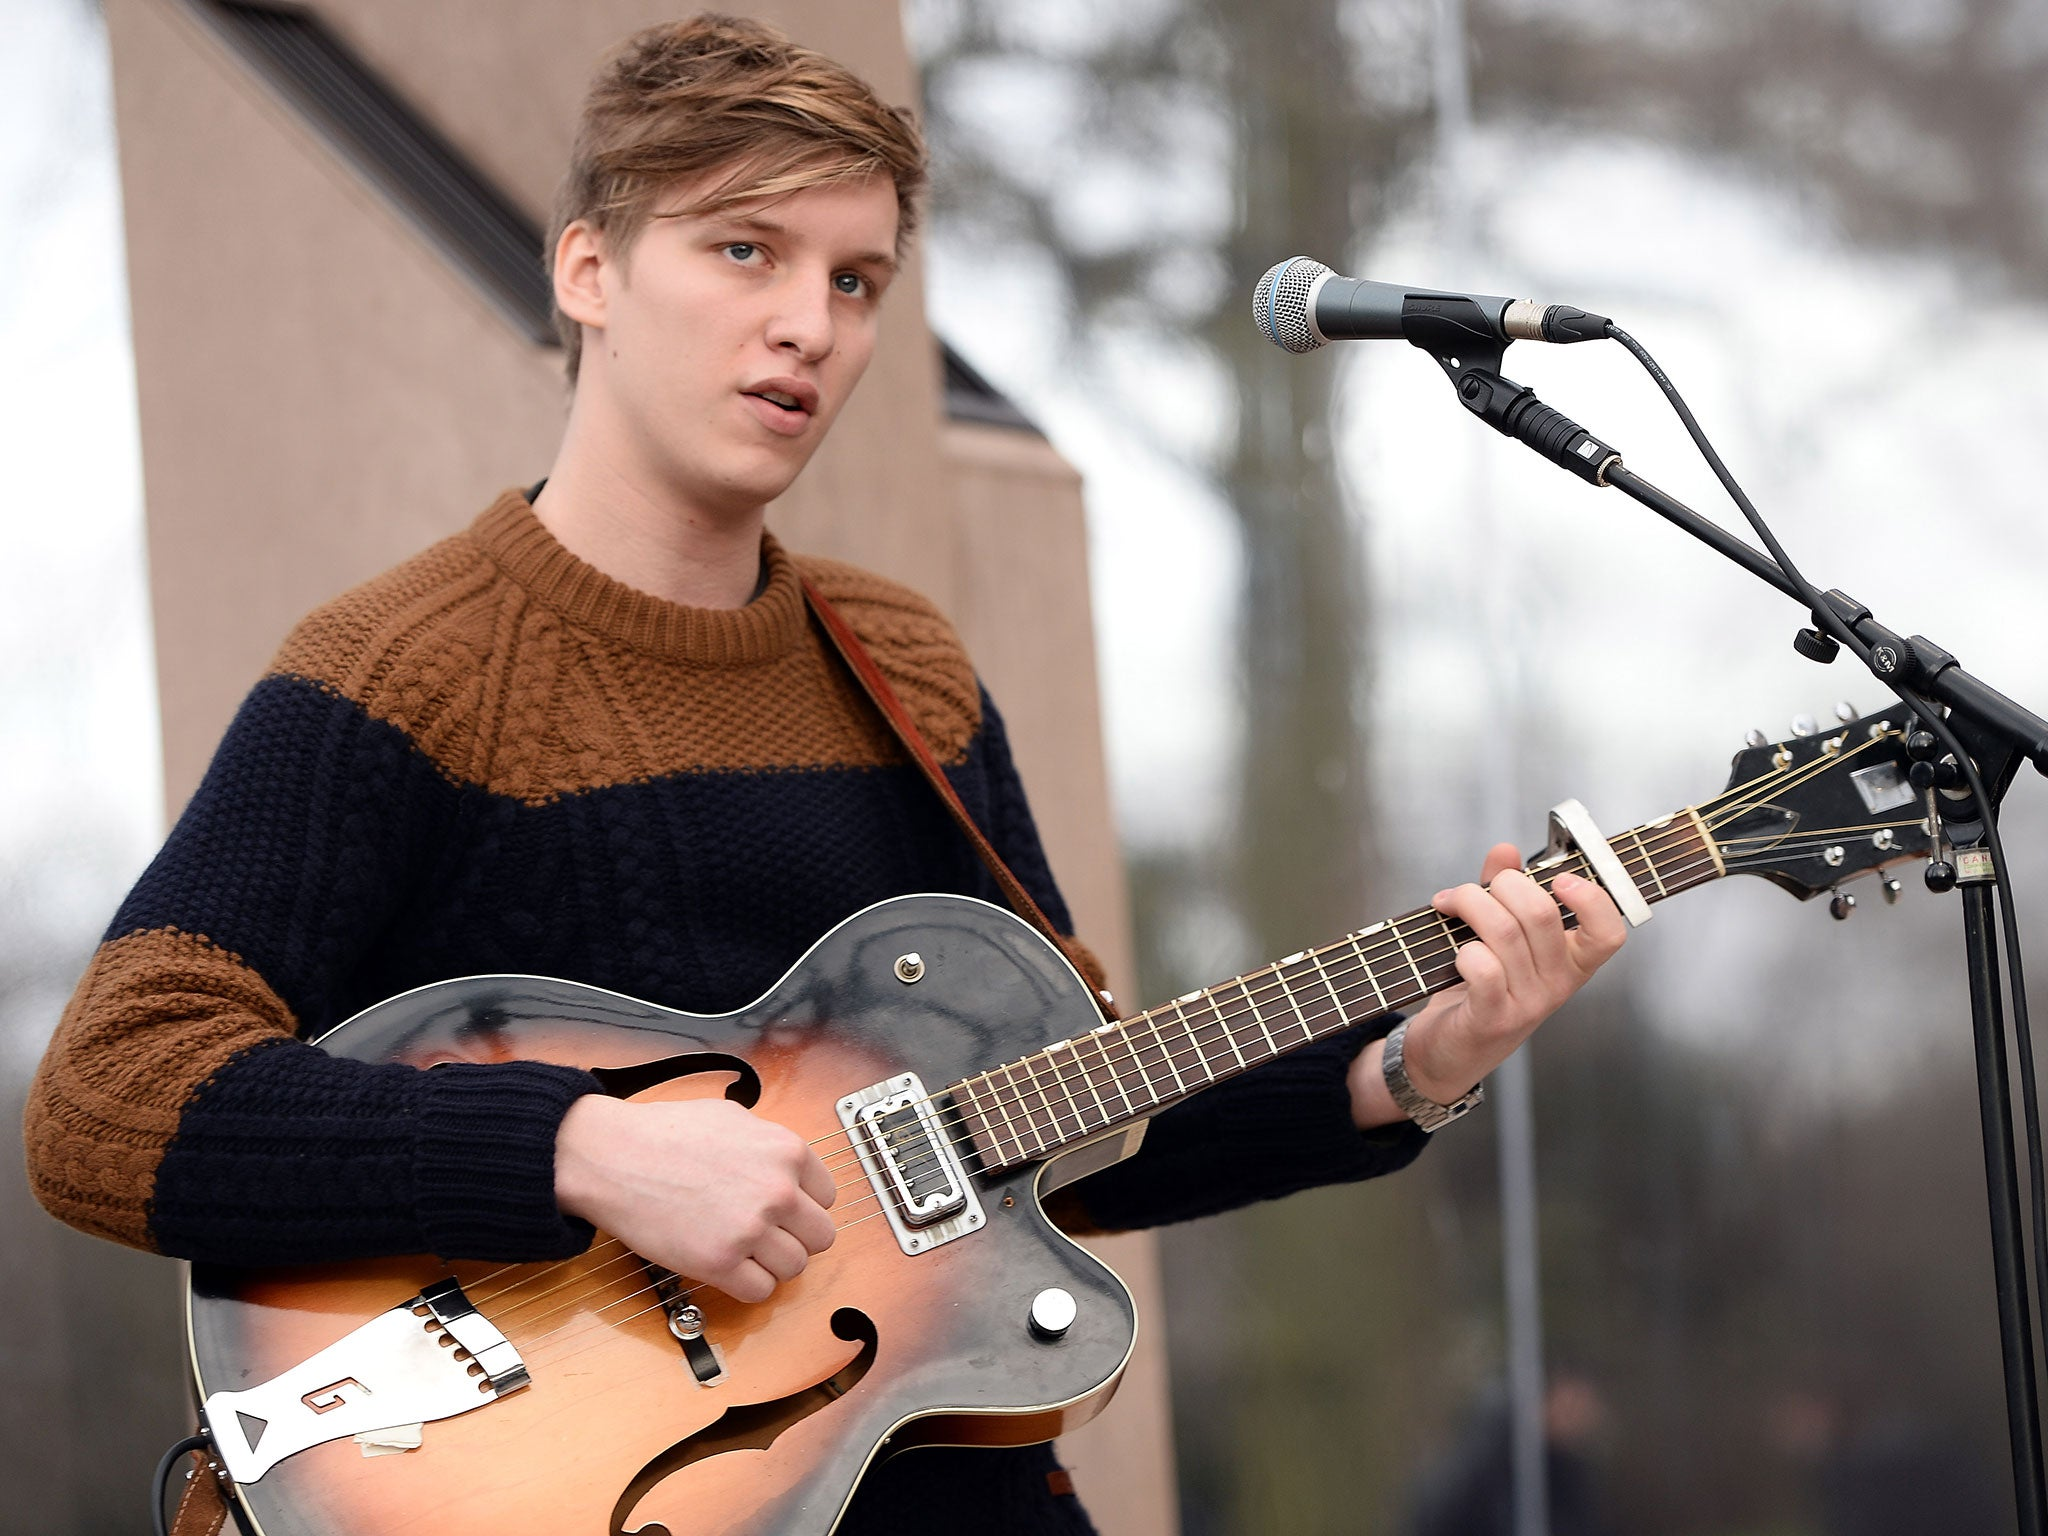 CHOOSE YOUR SIZE George Ezra Poster Budapest Wanted on Voyage Quality FREE P+P